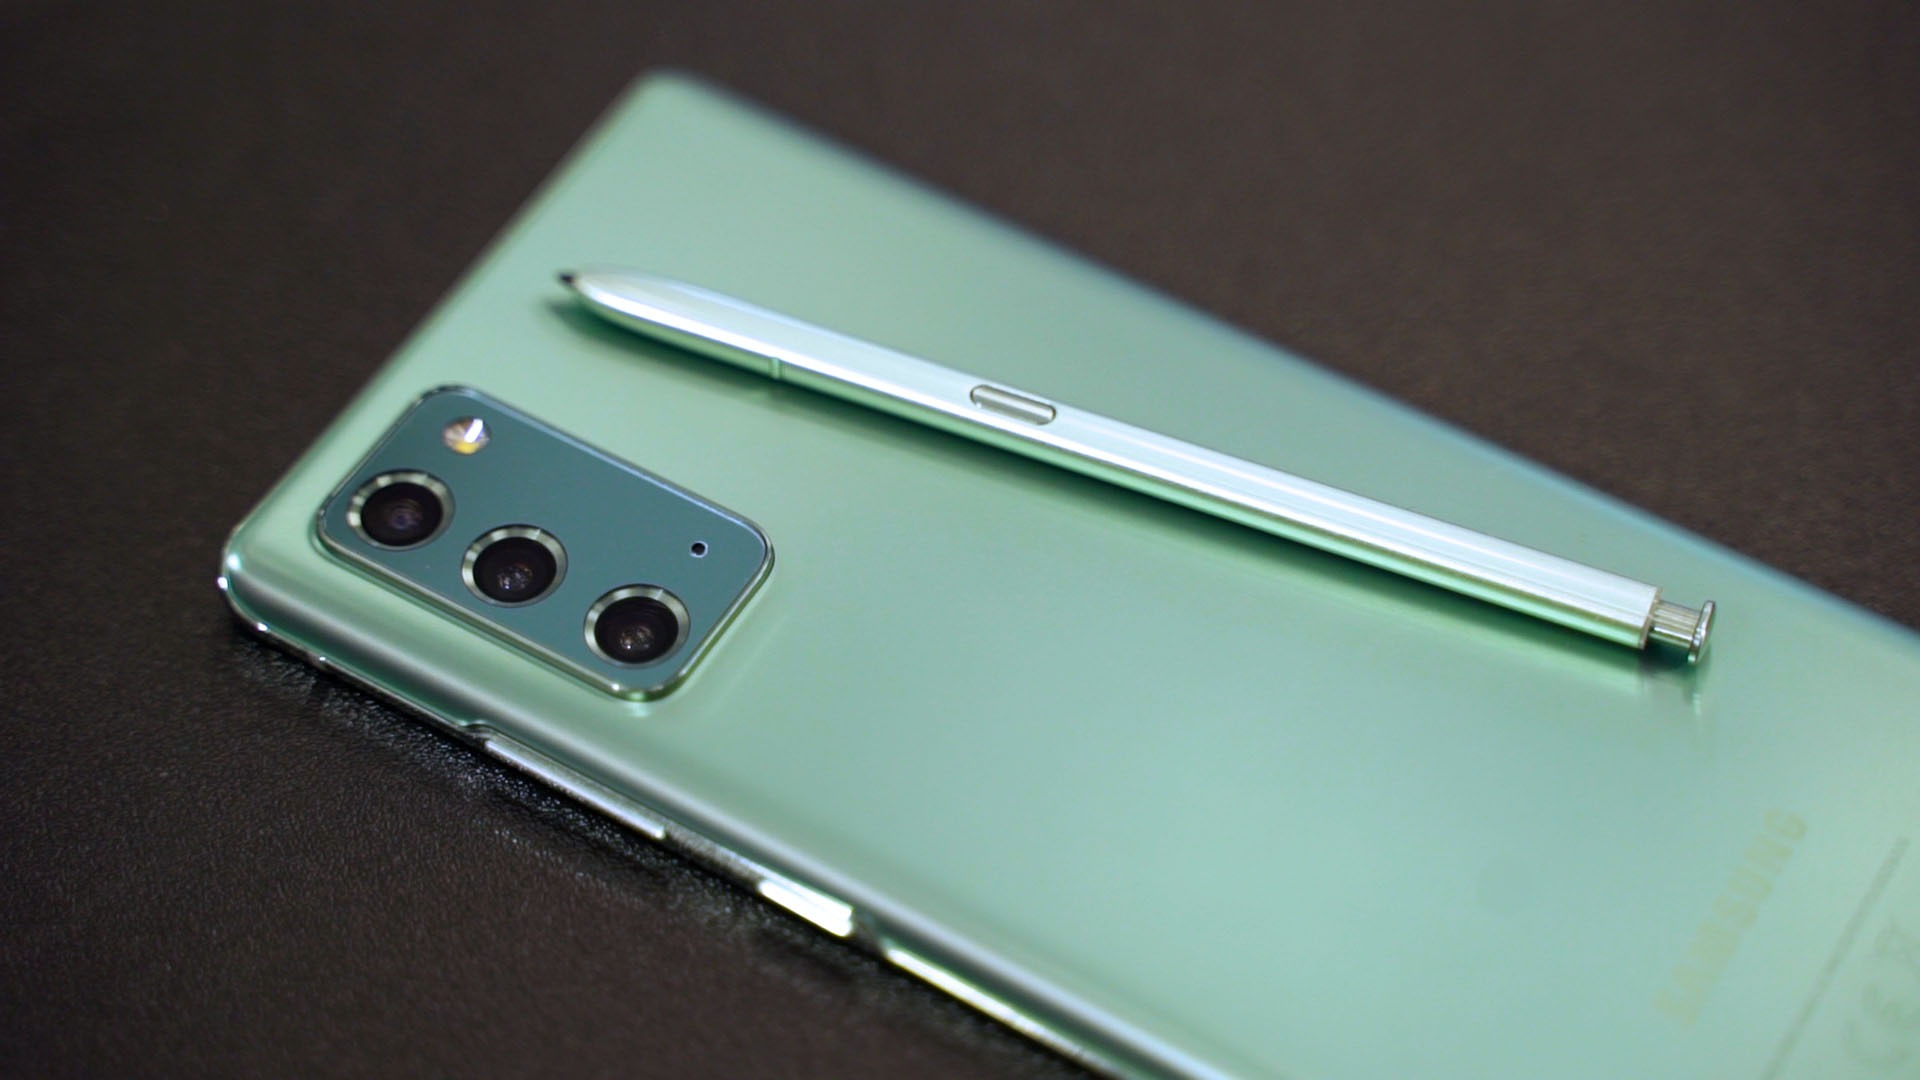 Galaxy Note 20 in Mystic Green launches in South Korea later this week